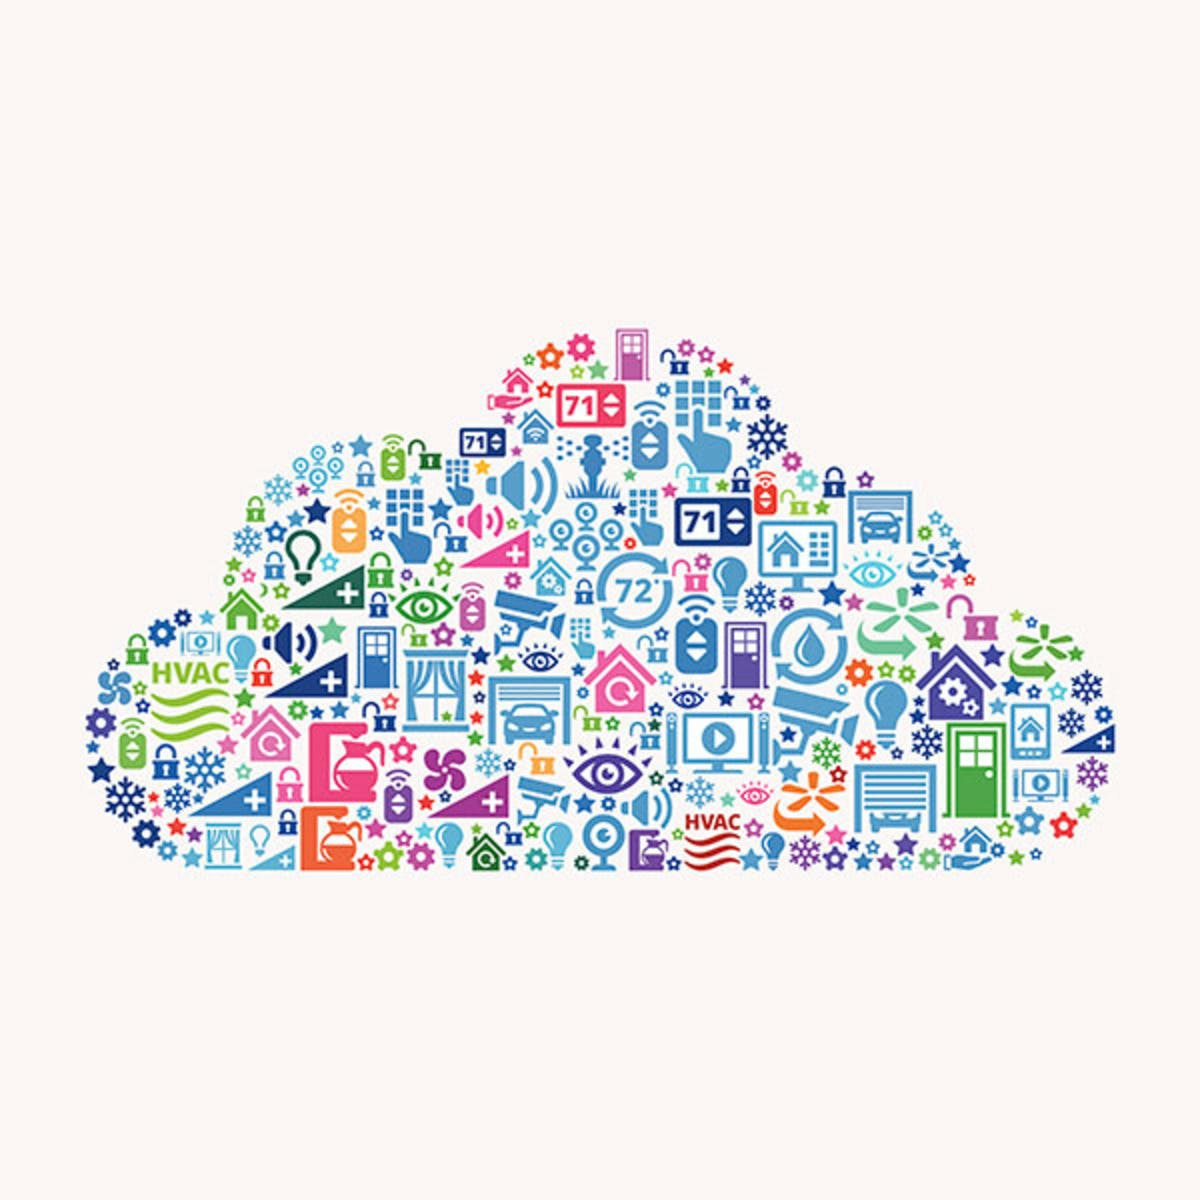 Internet of Things: Communication Technologies